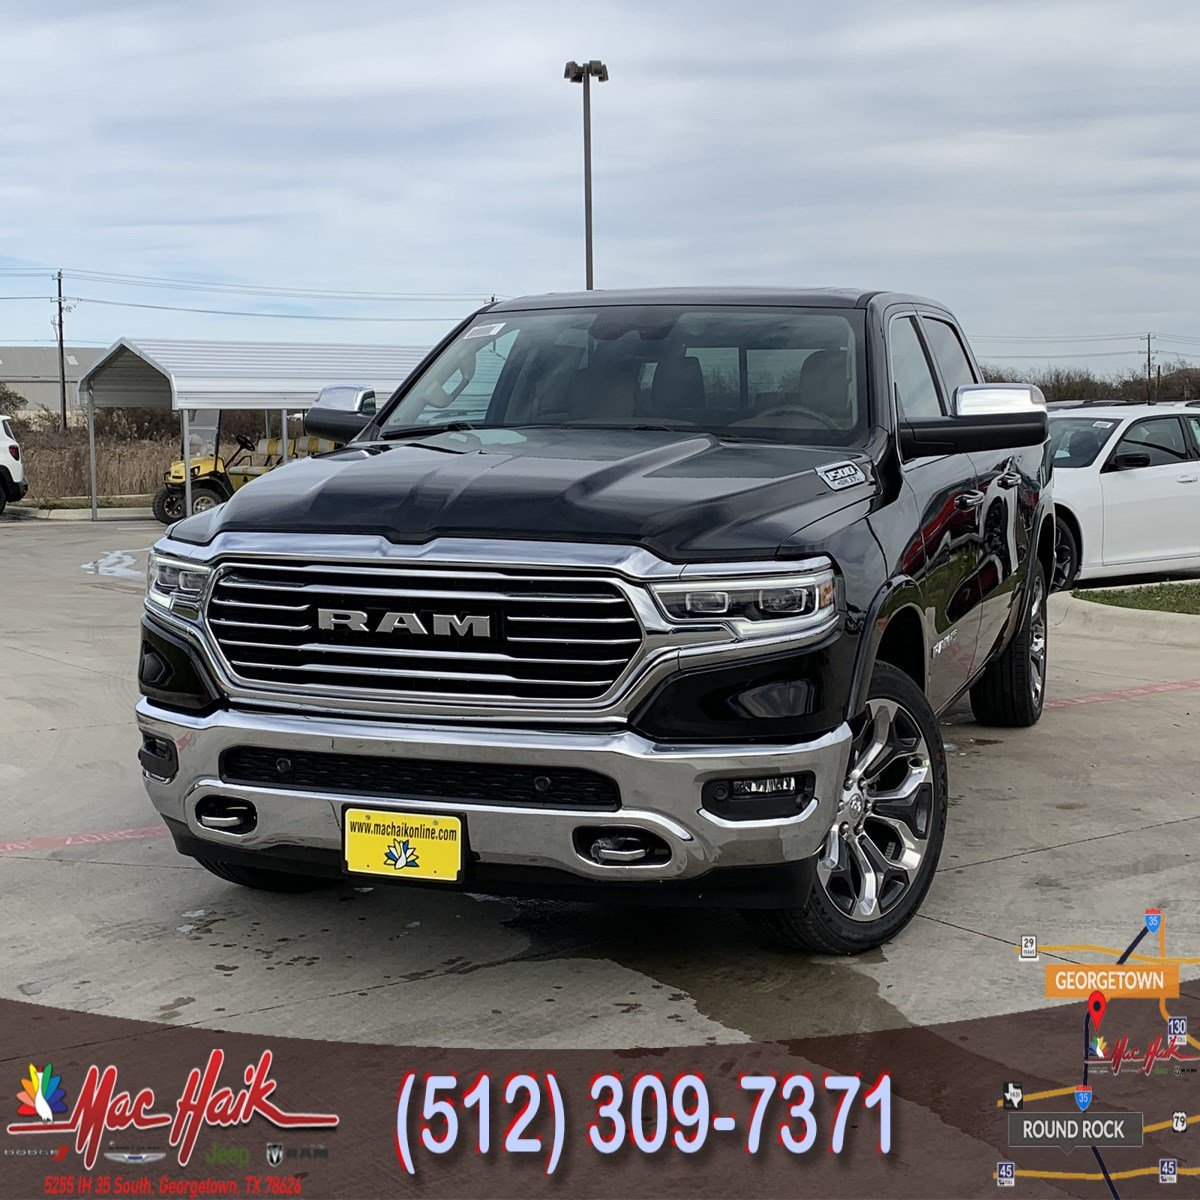 2019 Ram 1500: 2019 RAM All-New 1500 Longhorn Crew Cab For Sale In Austin